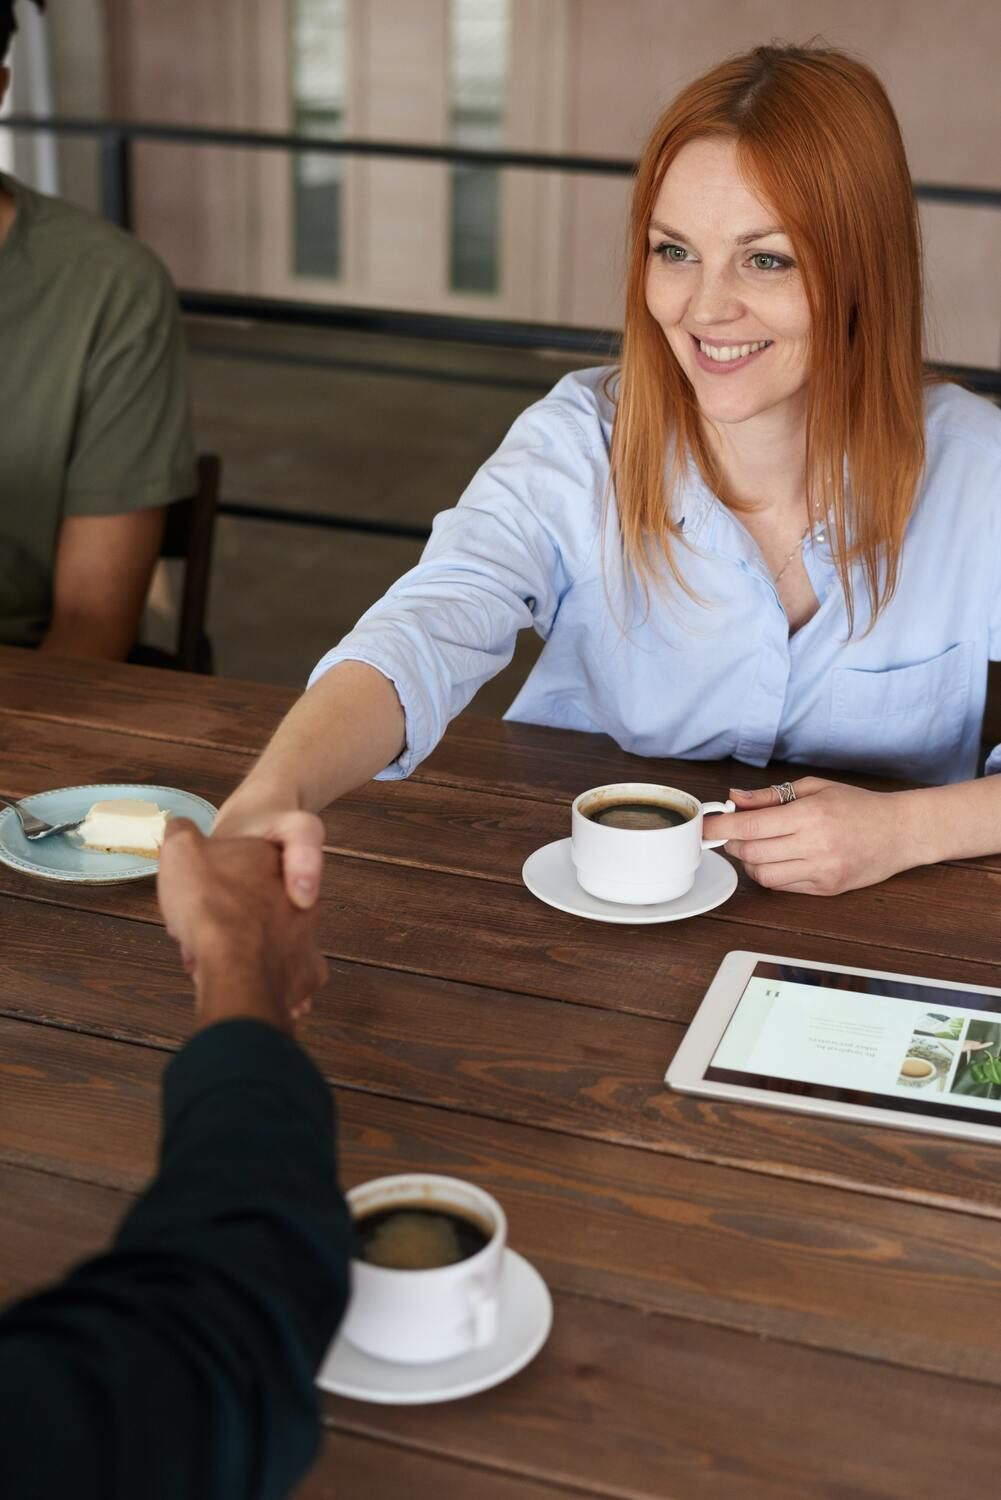 Woman freelancer meeting a potential client through networking and shaking hands